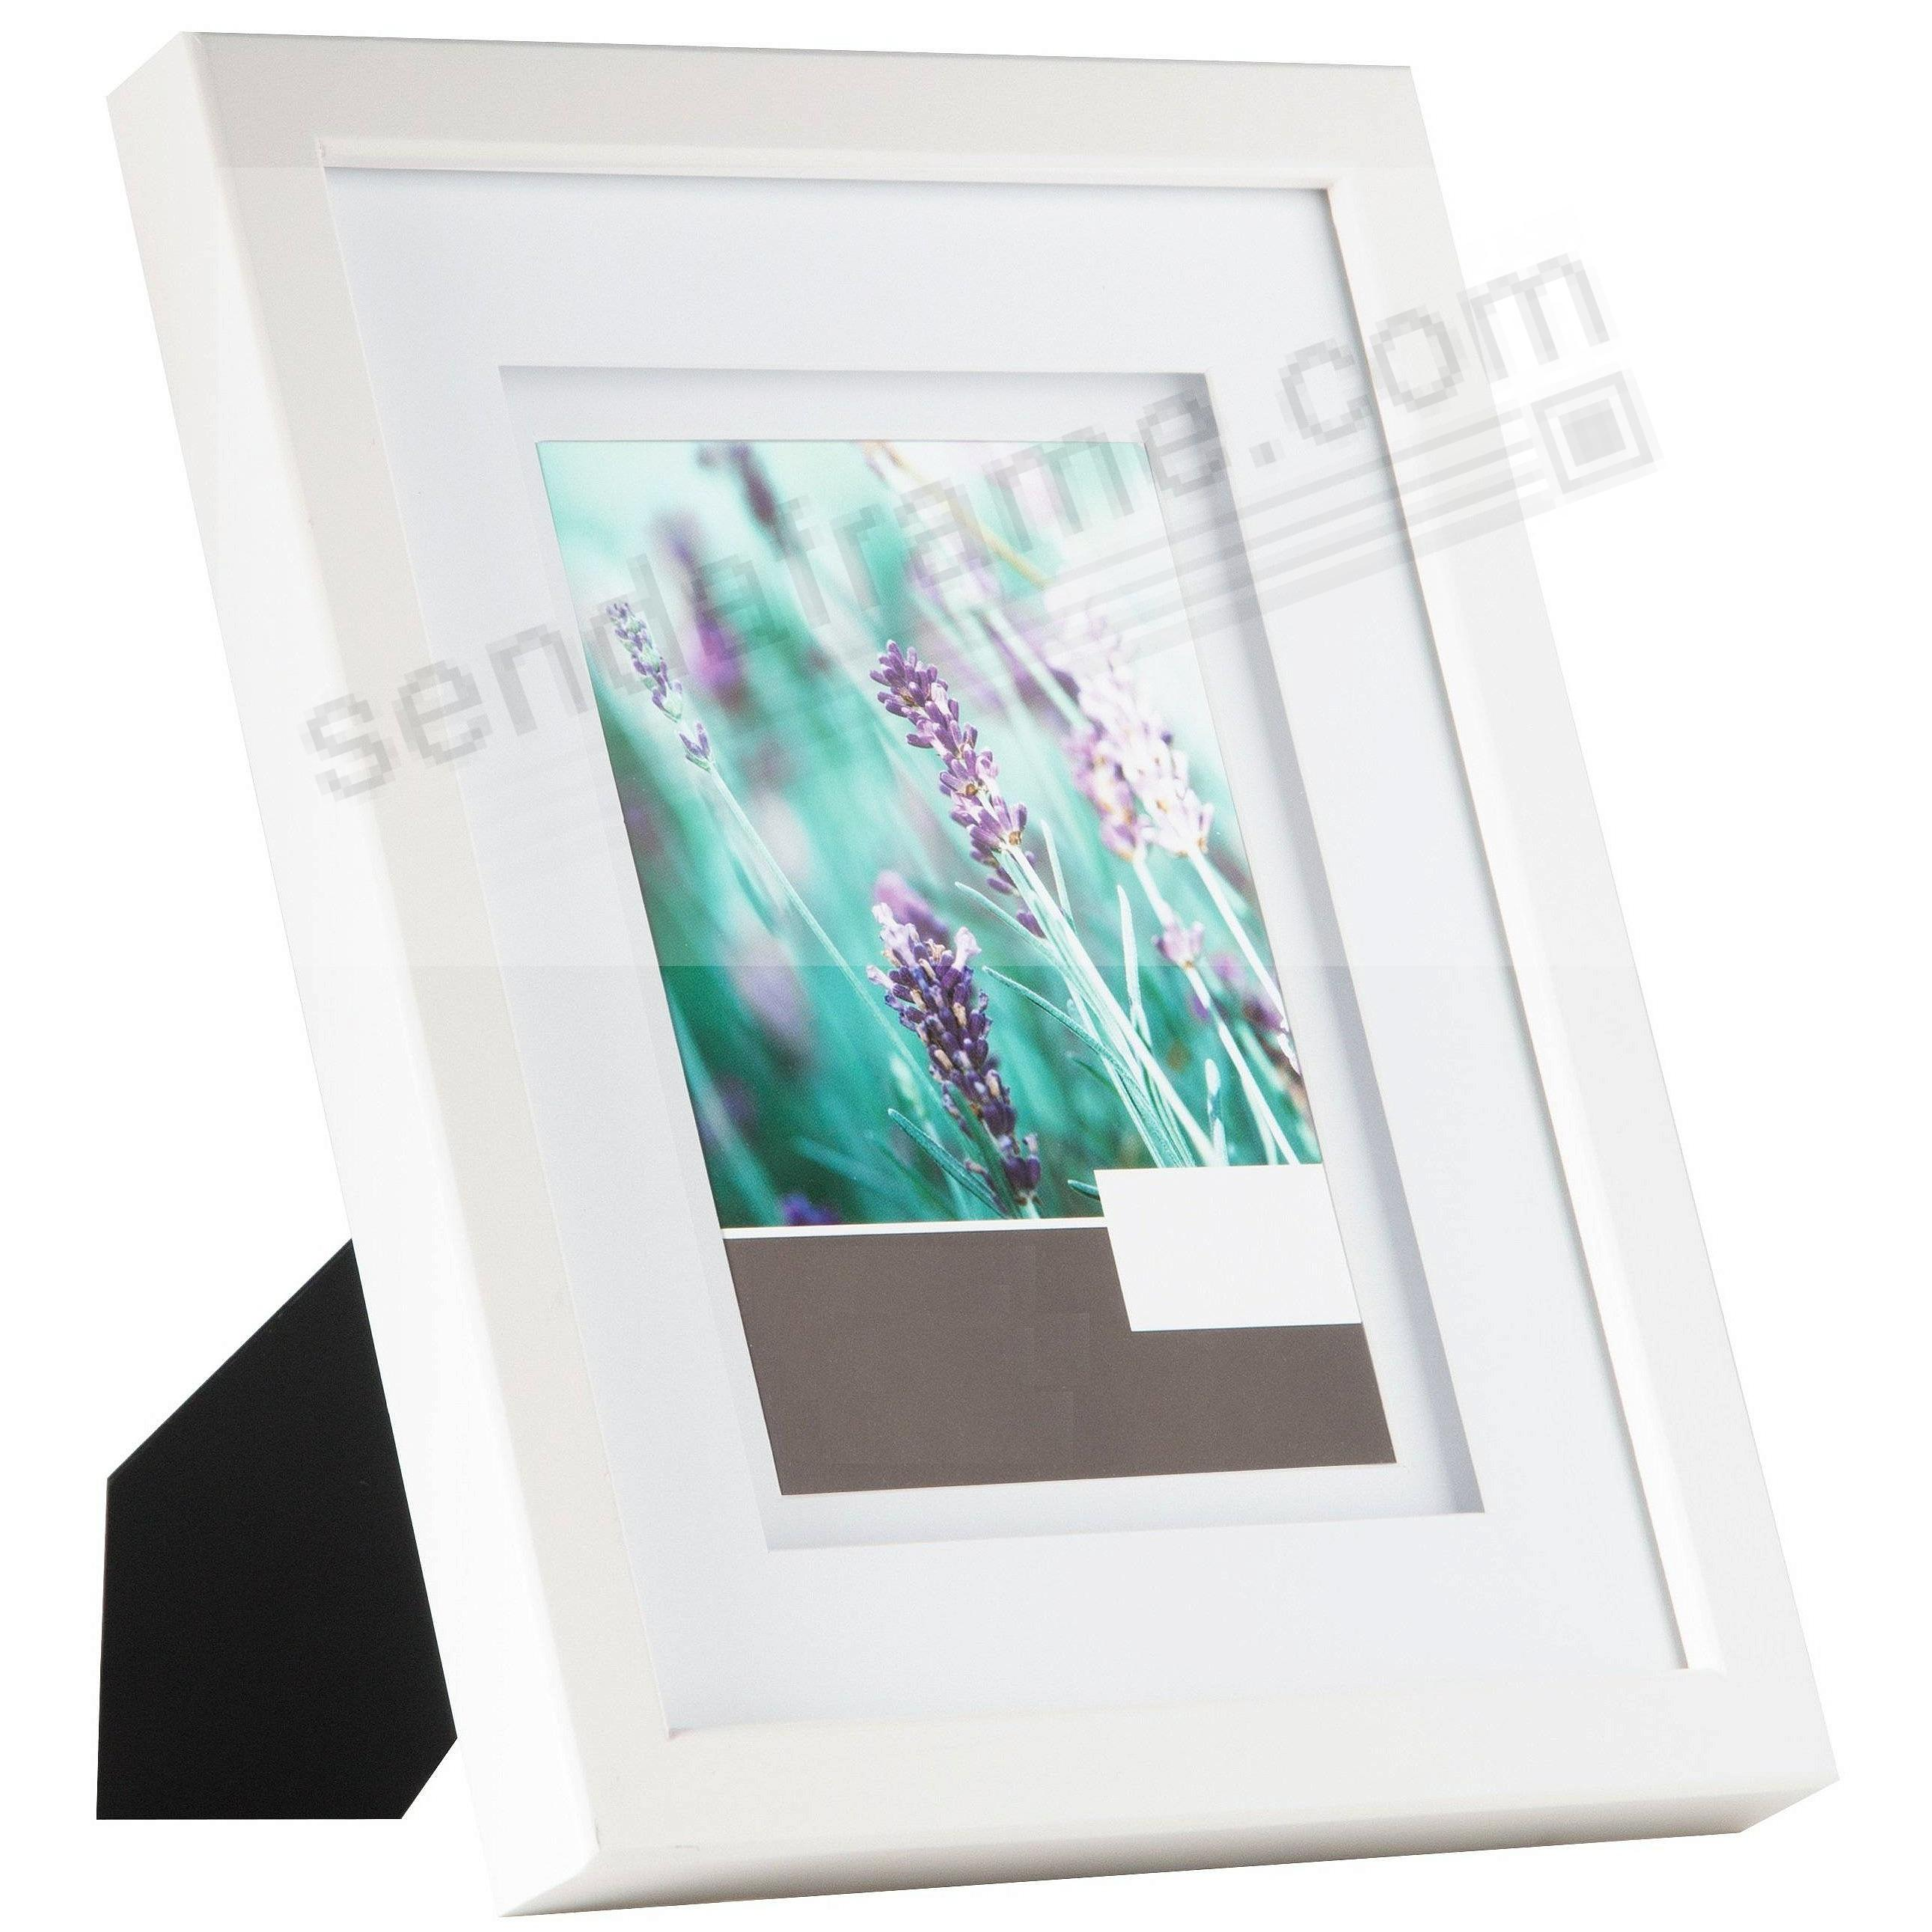 White Wall 11x14/8x10 Frame w/AirFloat White Mat by Gallery ...